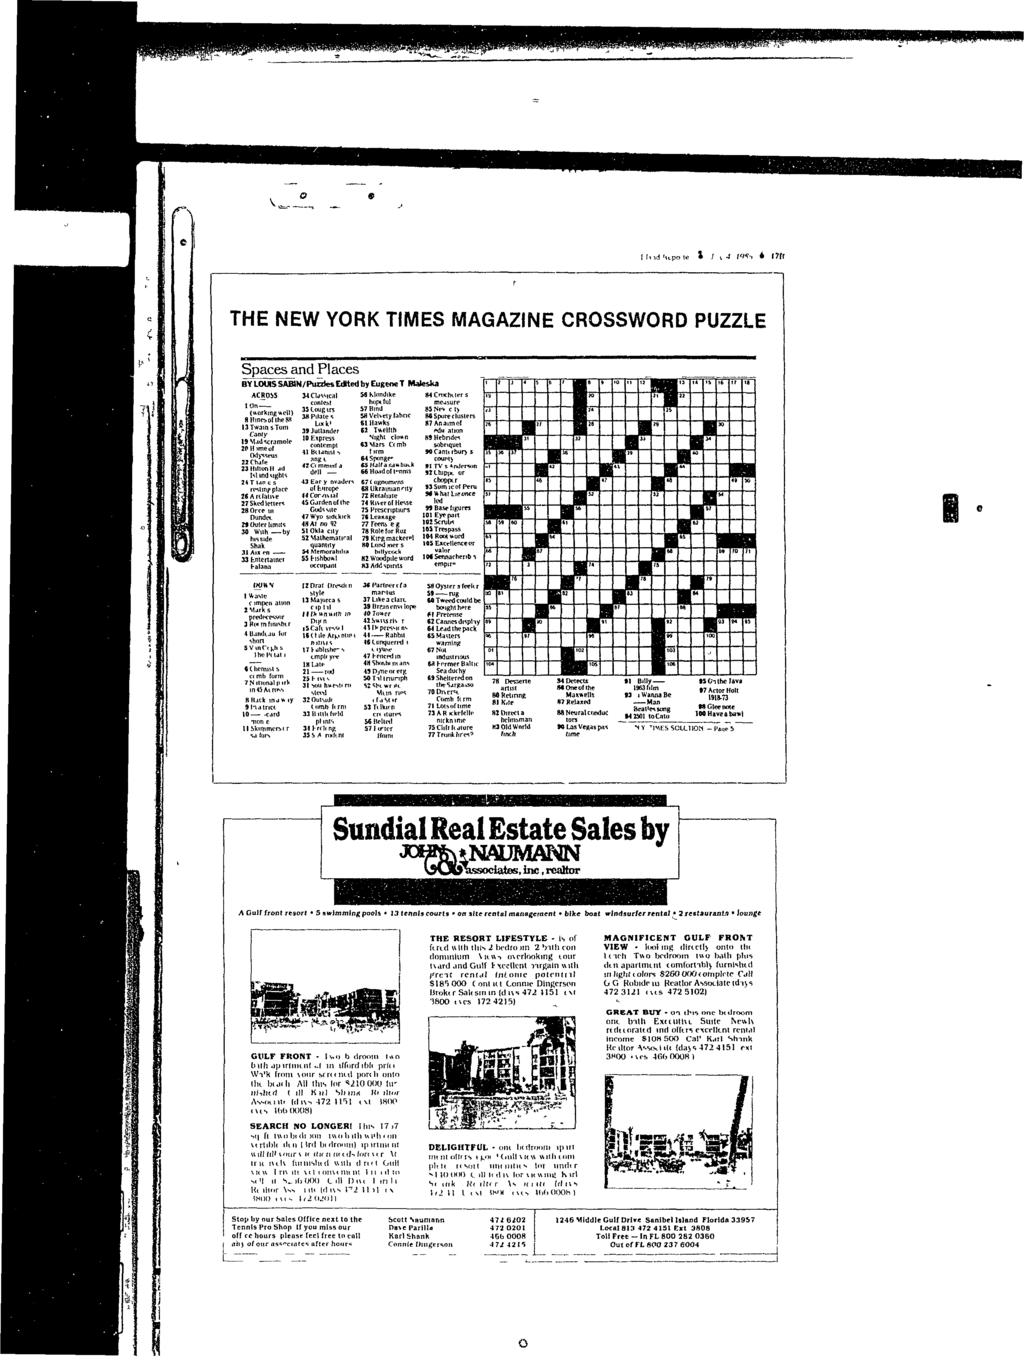 I 1,1 ill-, * 1711 THE NEW YORK TIMES MAGAZINE CROSSWORD PUZZLE Spaces and Places BY LOWS SABW/Puzztes Edfted by Eugene T Maleska ACROSS MCbsMca hopeful (working well) 35tougirs 57 Bind fthfhgs 38